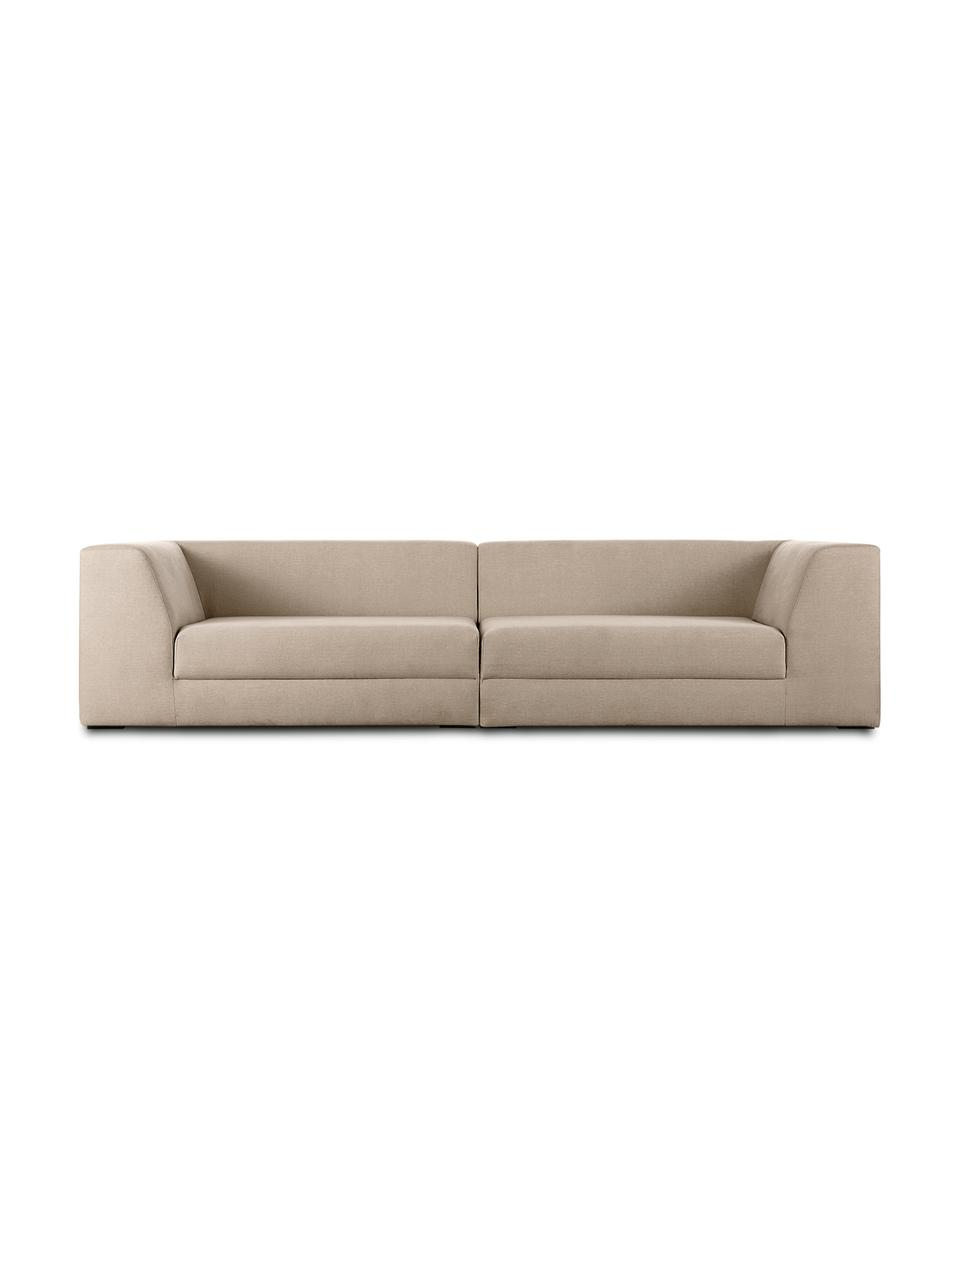 Canapé modulable 3 places taupe Grant, Tissu taupe